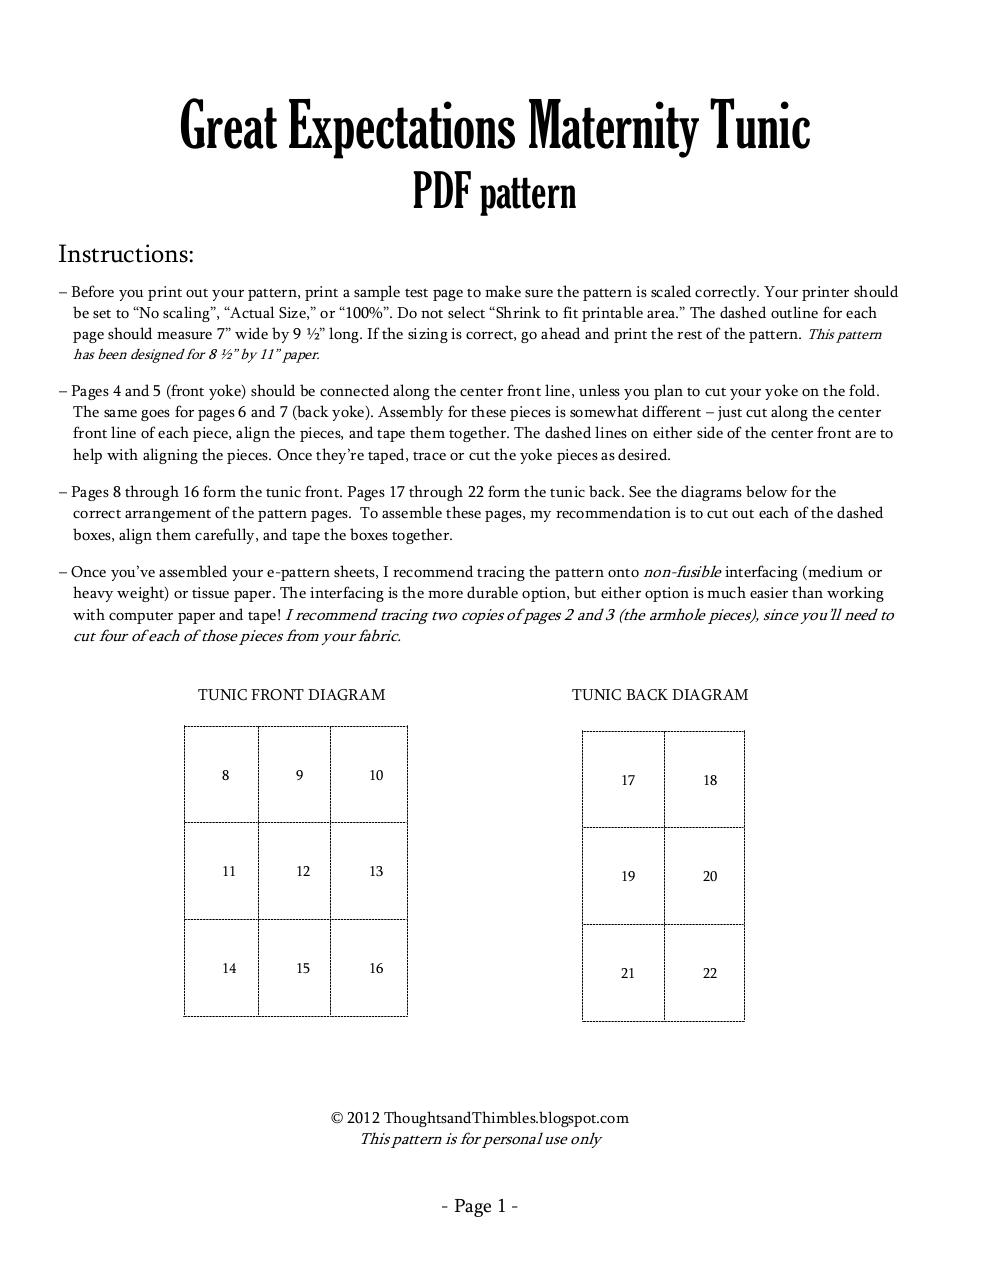 Great Expectations Maternity Tunic Pattern.pdf - page 1/22